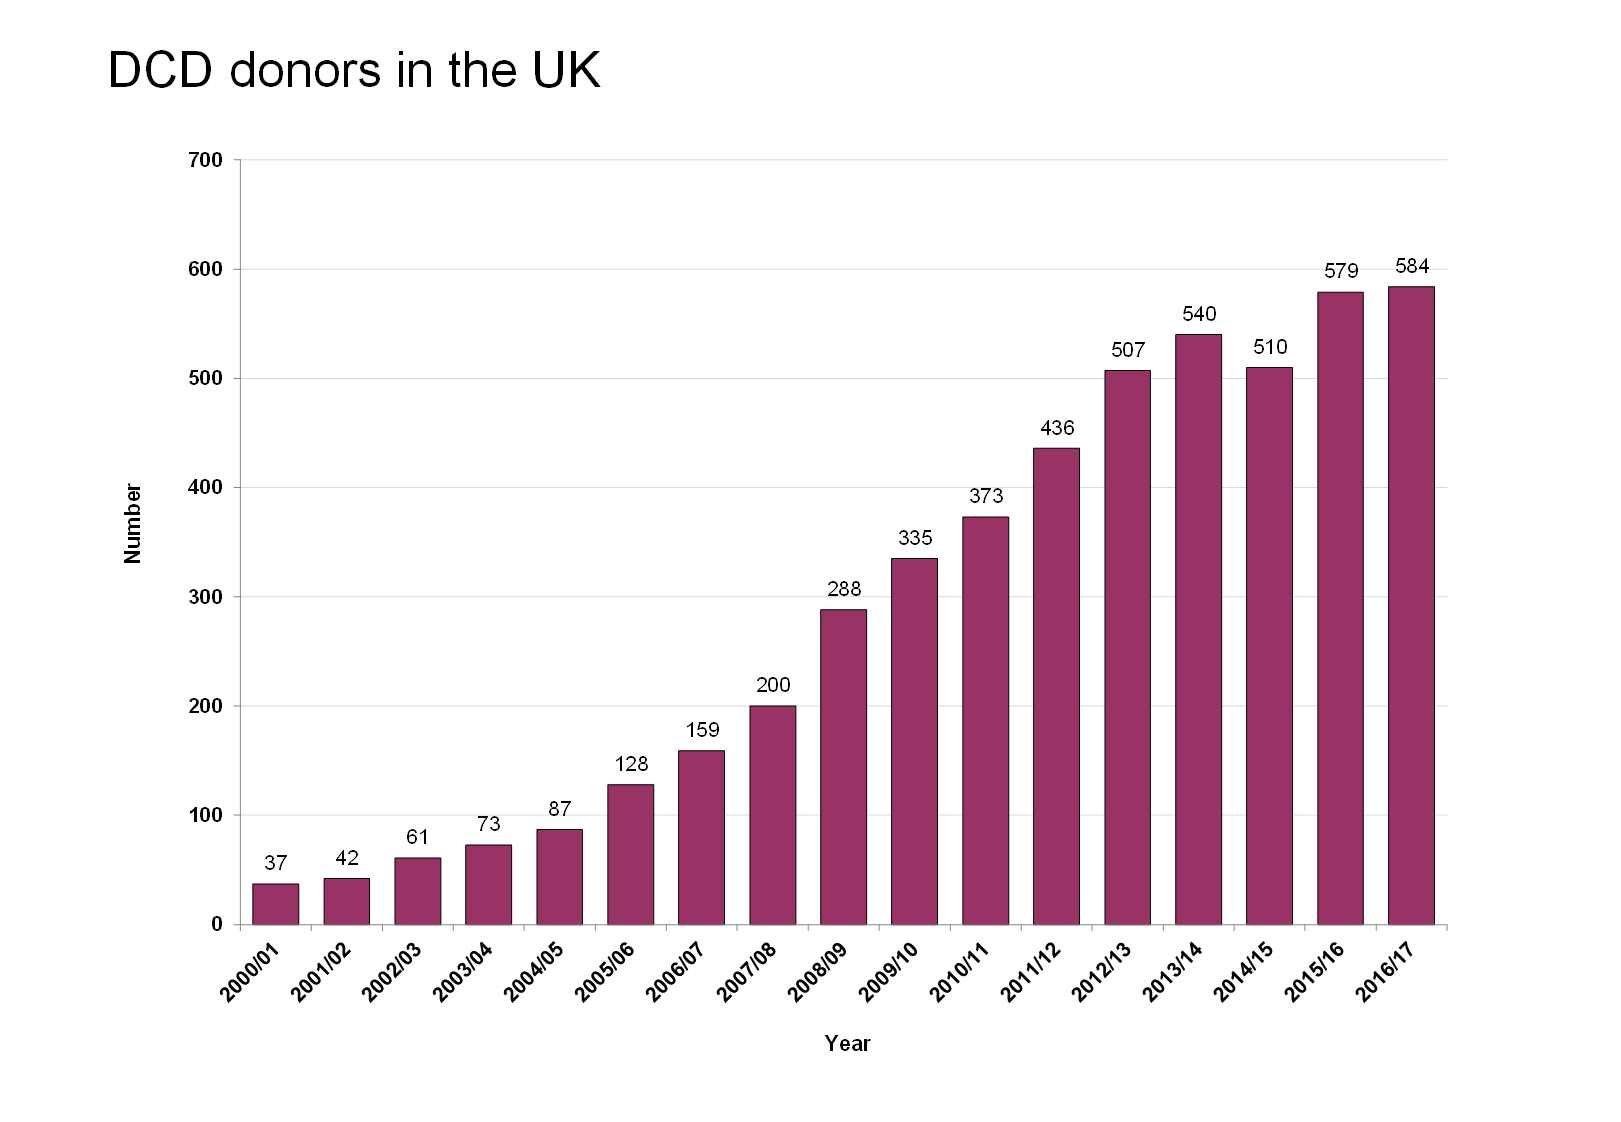 DCD donors in the UK